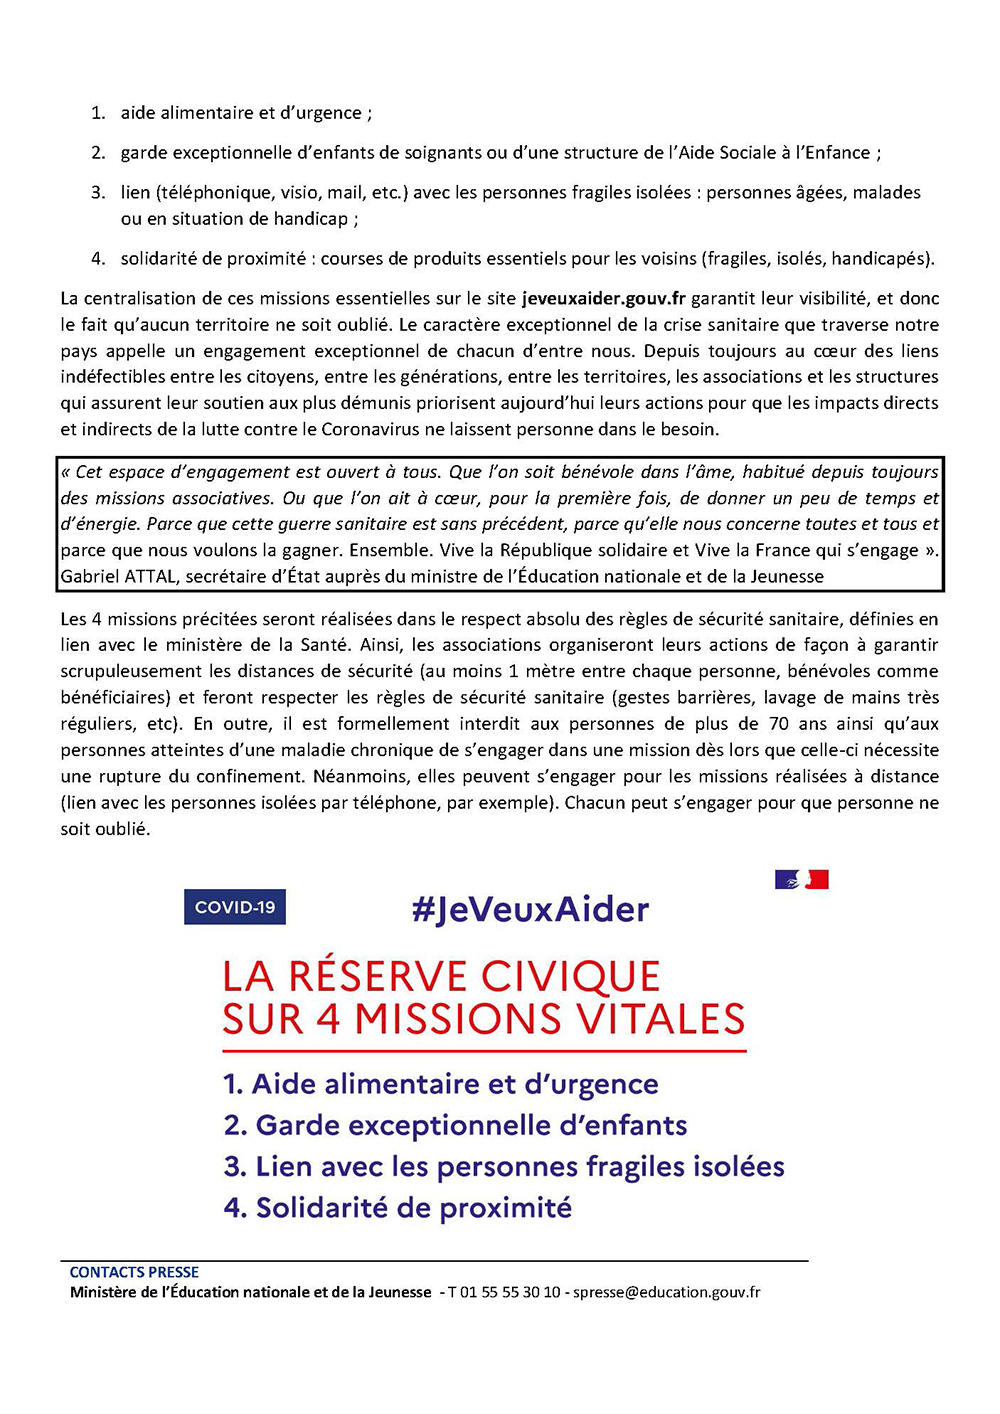 CP 22032020 lancement_plateforme_jeveuxaider.gouv.fr-1_Page_2